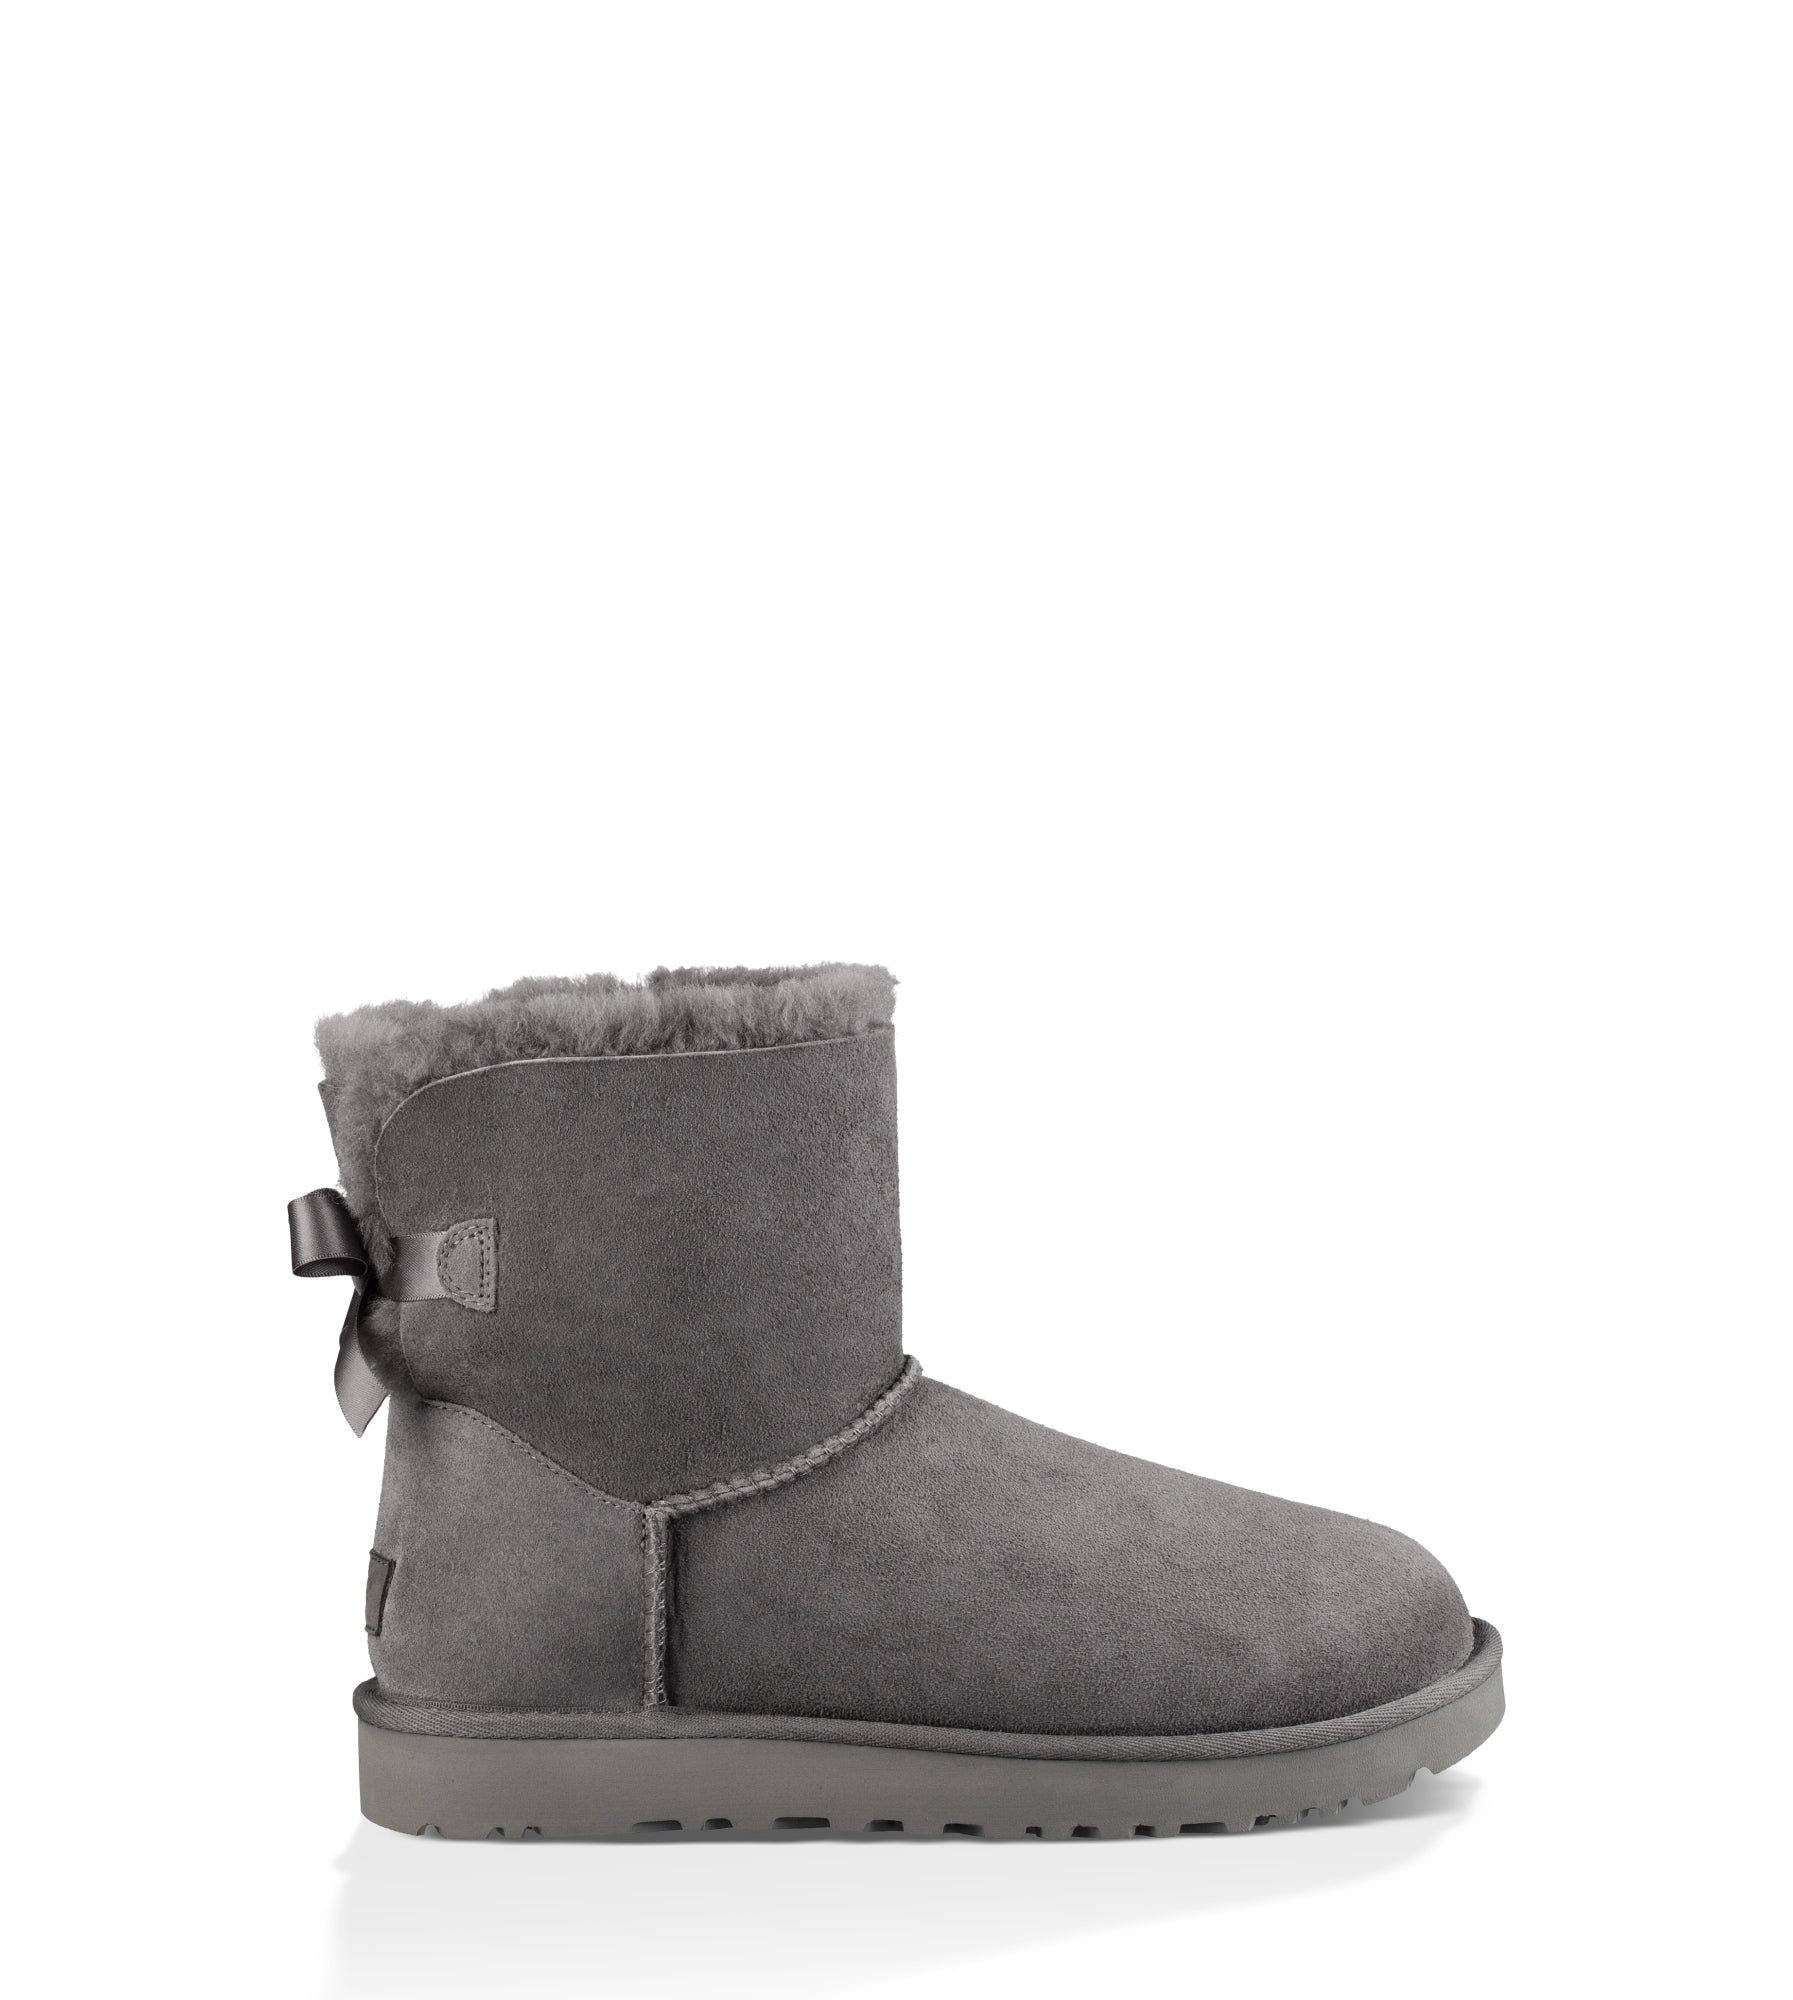 UGG Women's MINI BAILEY BOW II